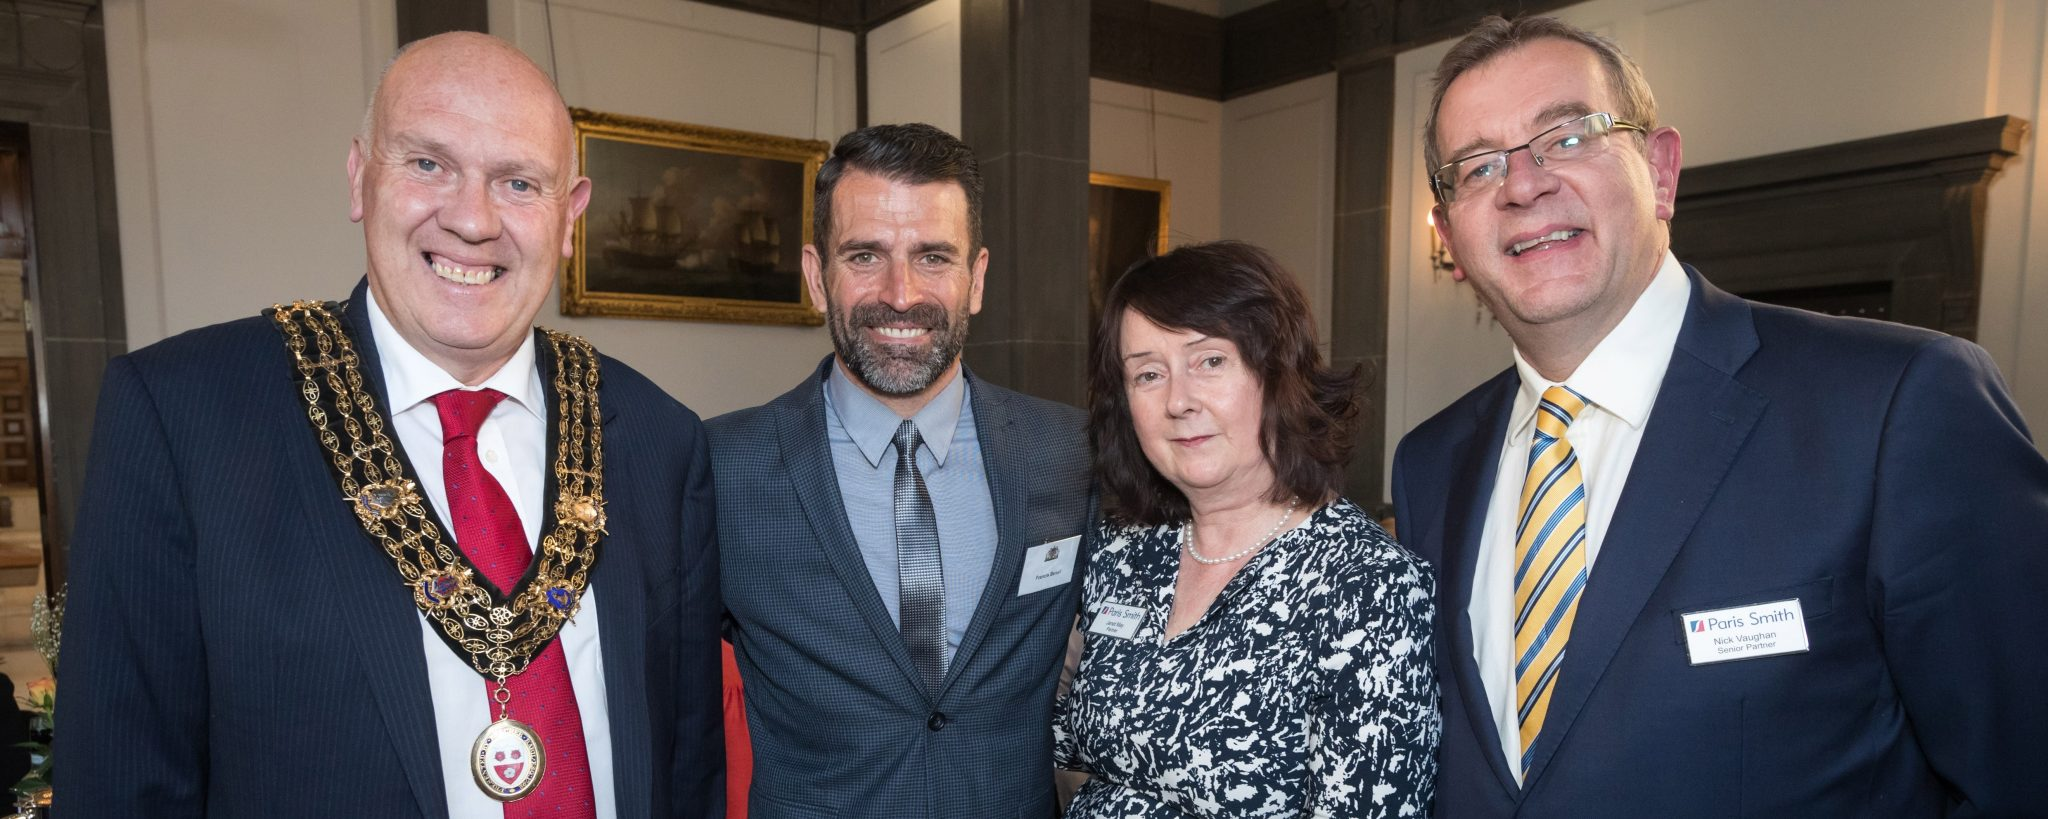 Francis Benali and key Southampton Charities join Paris Smith LLP for a special dinner in the Mayor's Parlour